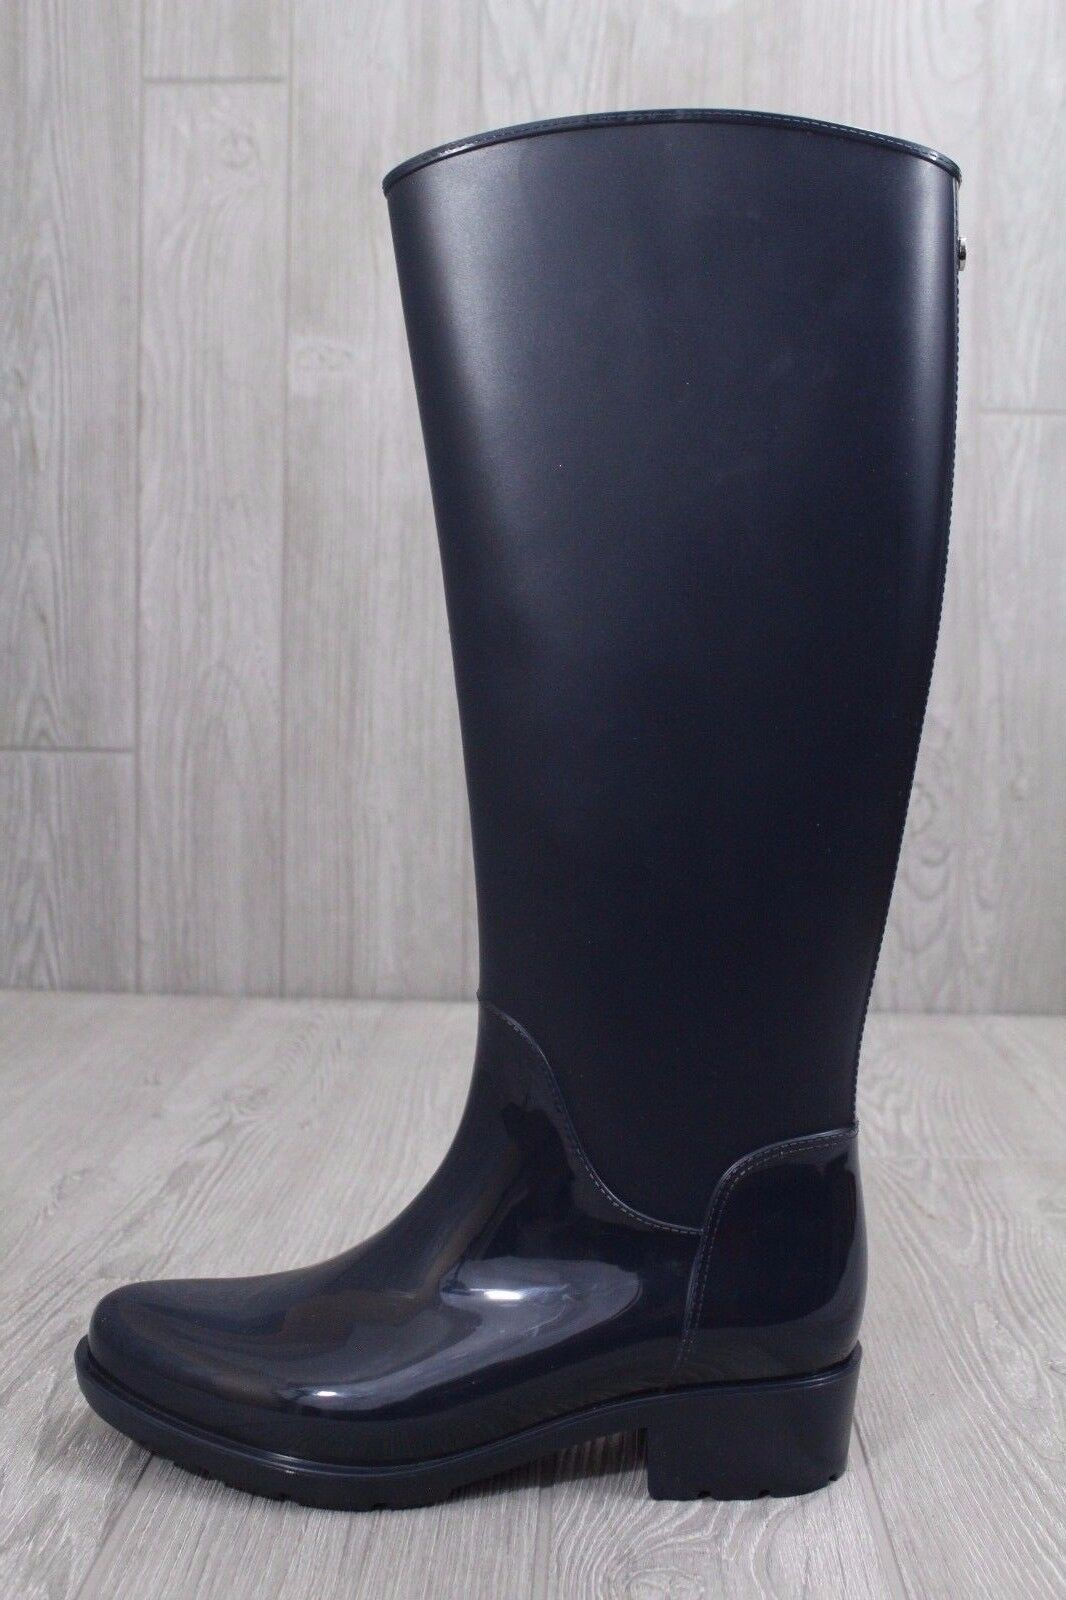 24 New Sam Edelman Women's Sydney Navy Blue Waterproof Rubber Rain Boots Size 7